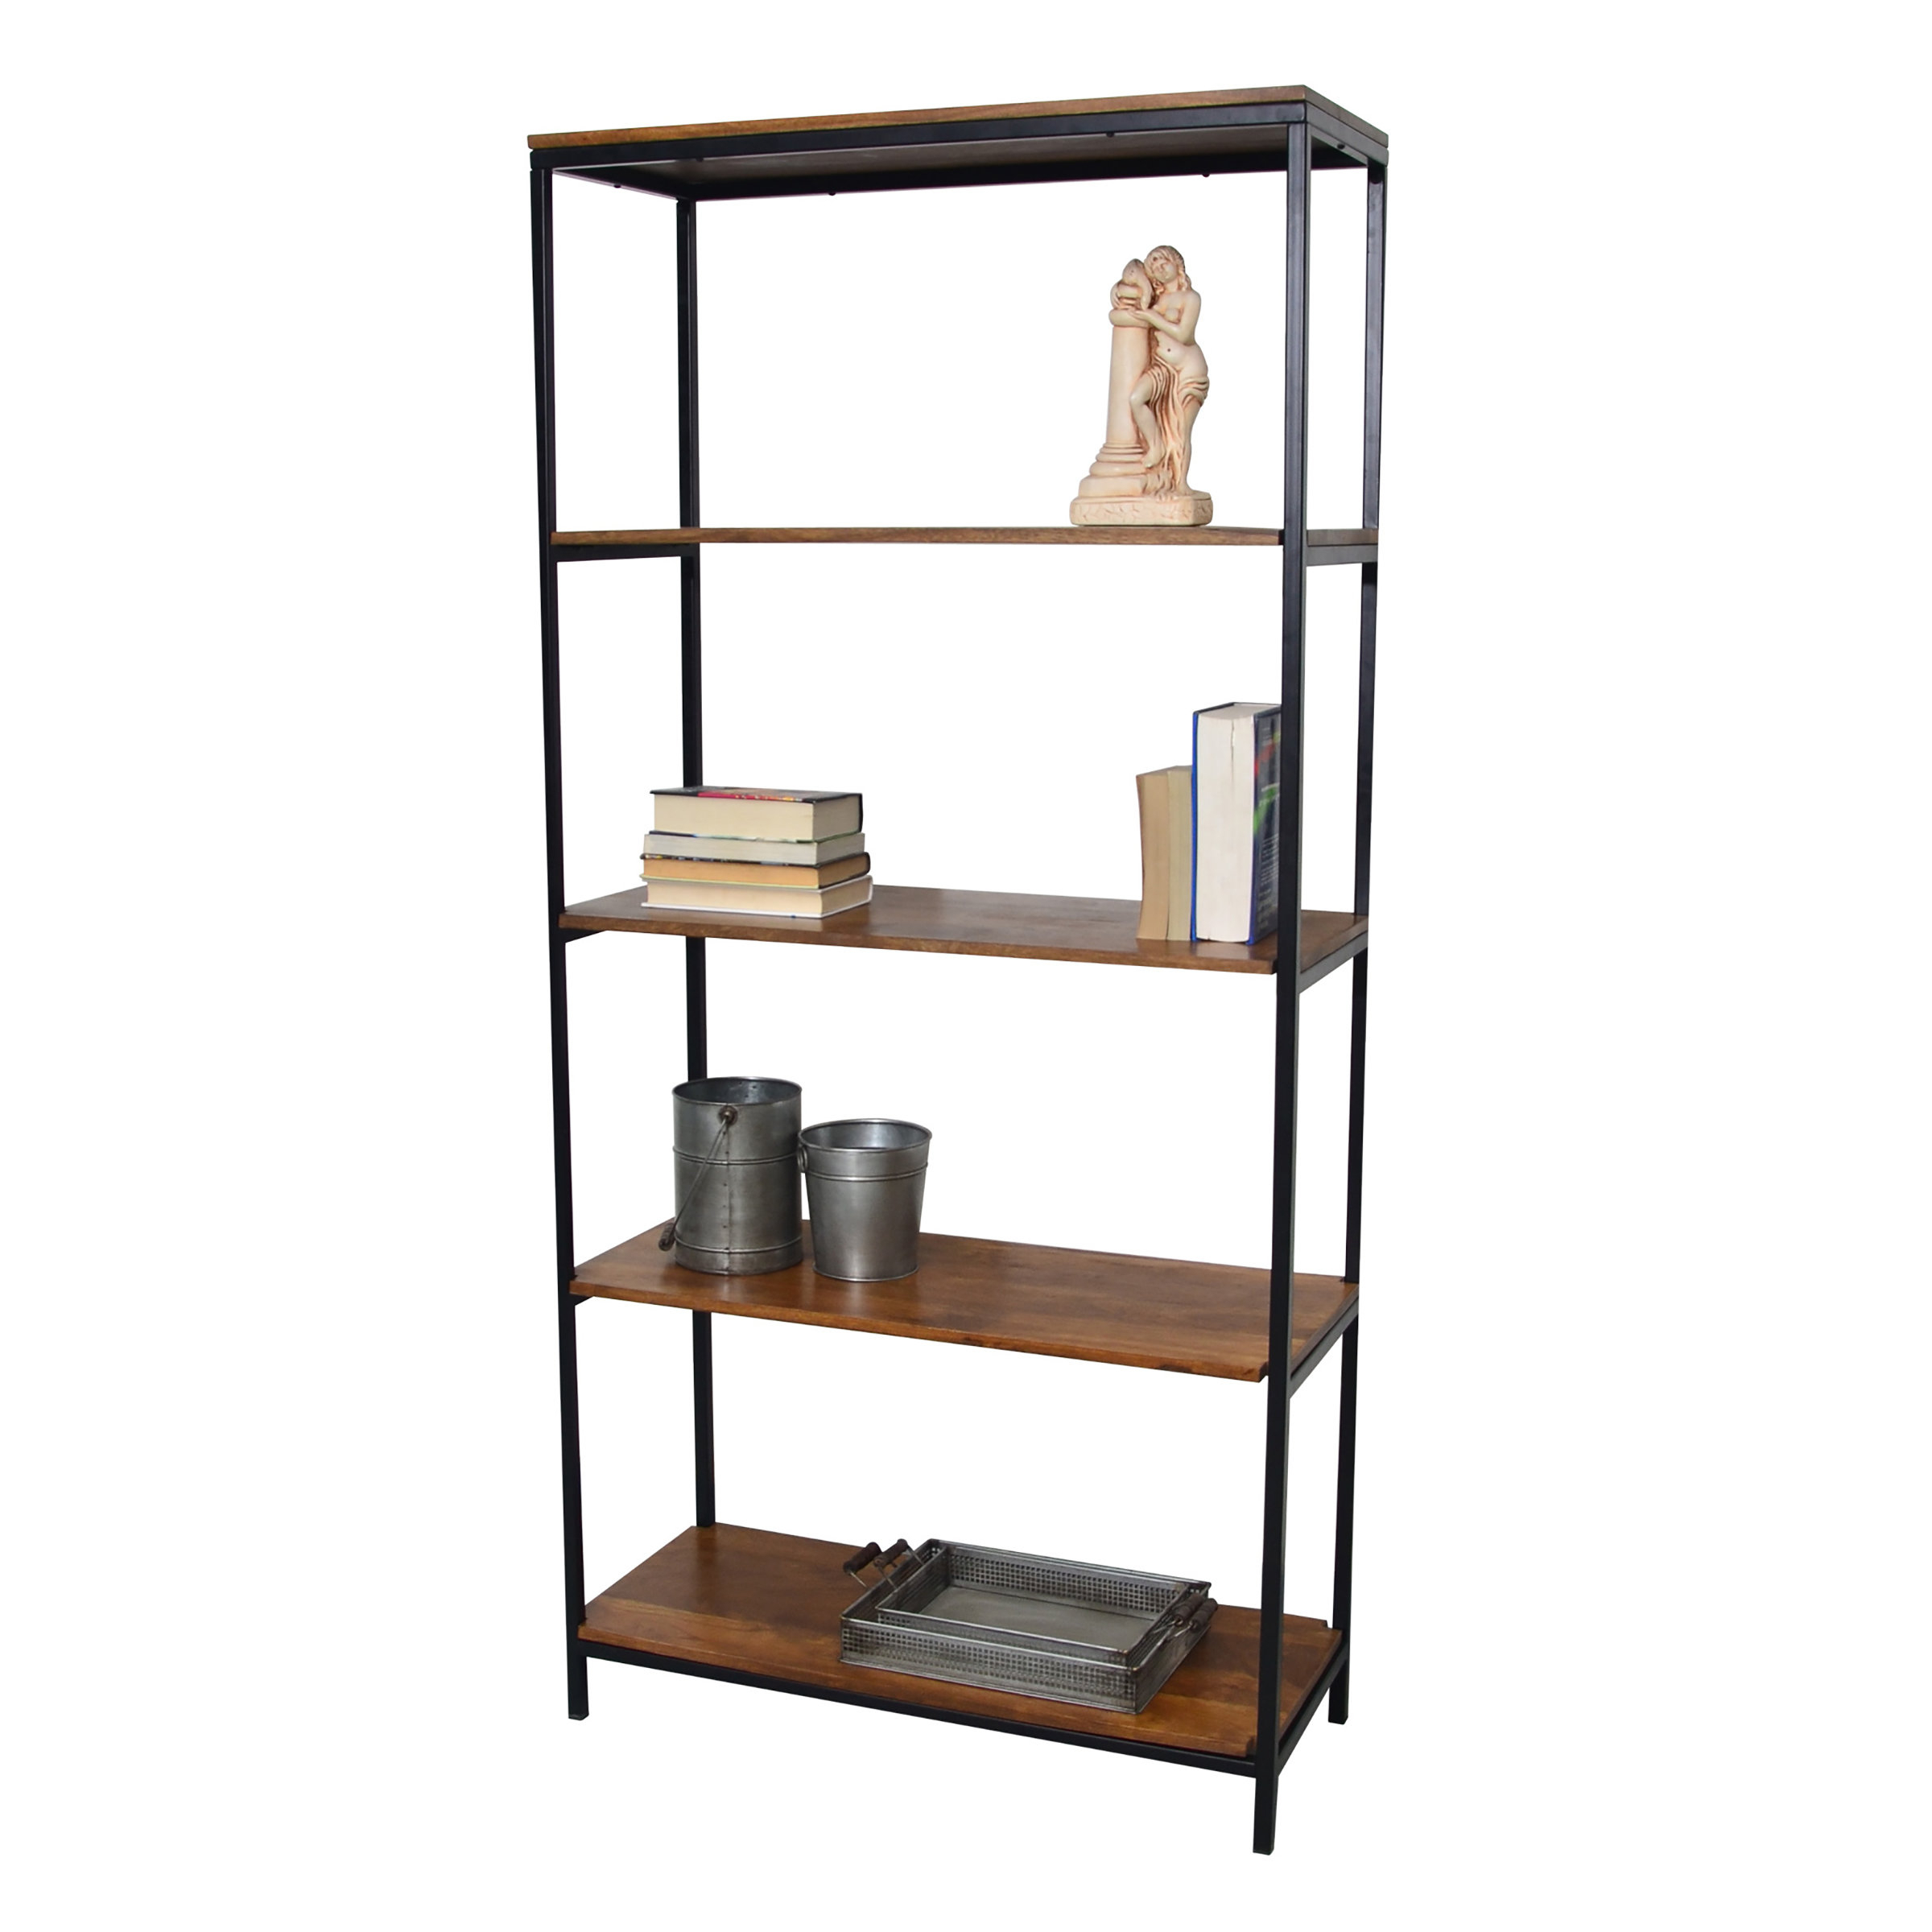 Defranco Etagere Bookcase For Latest Moriann Etagere Bookcases (View 2 of 20)